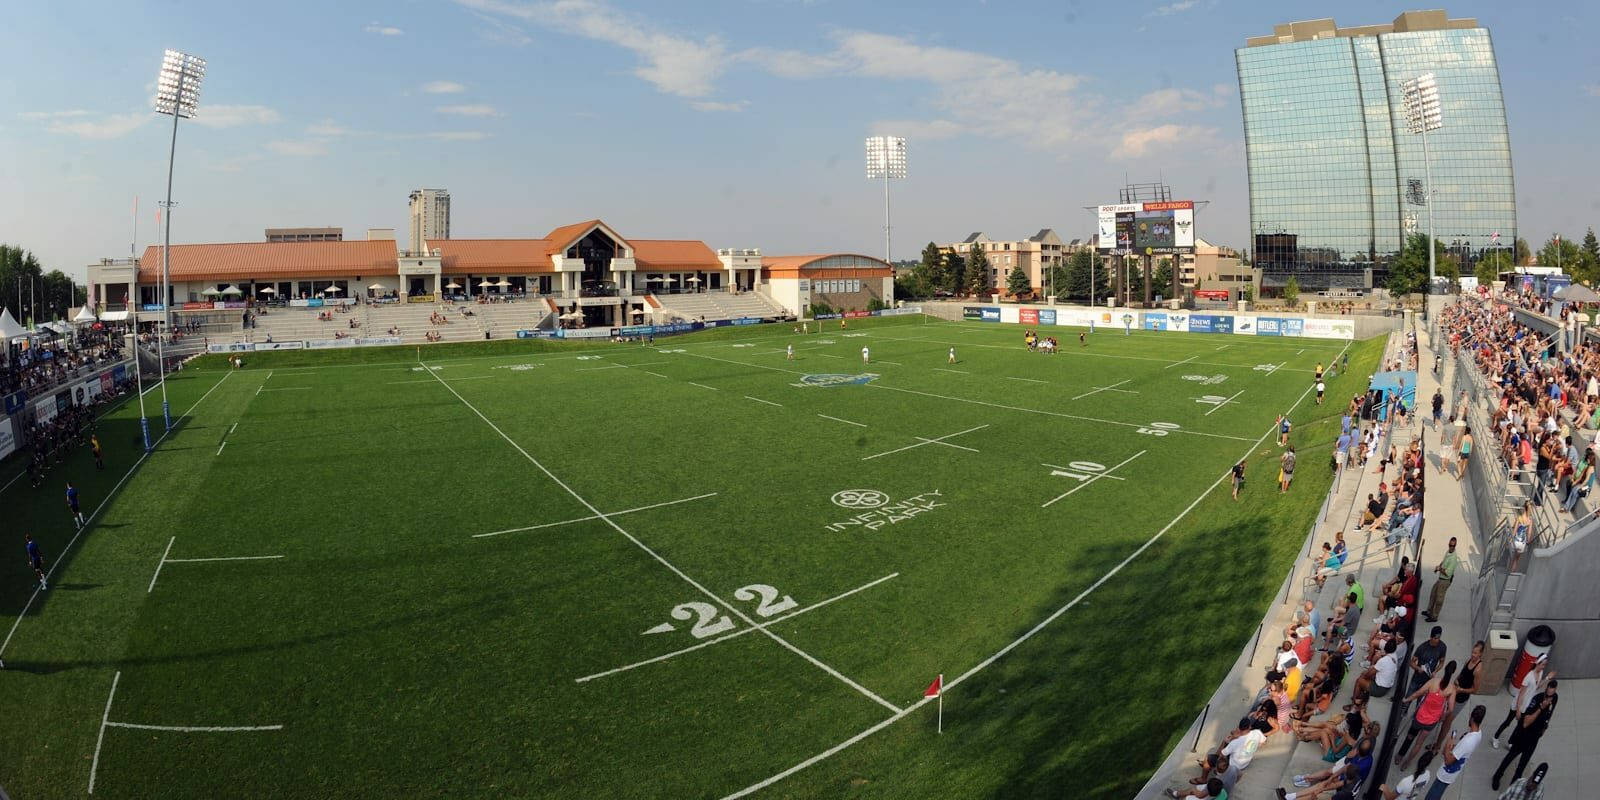 Infinity Park at Glendale Rugby Match Air Force vs Marine Corps